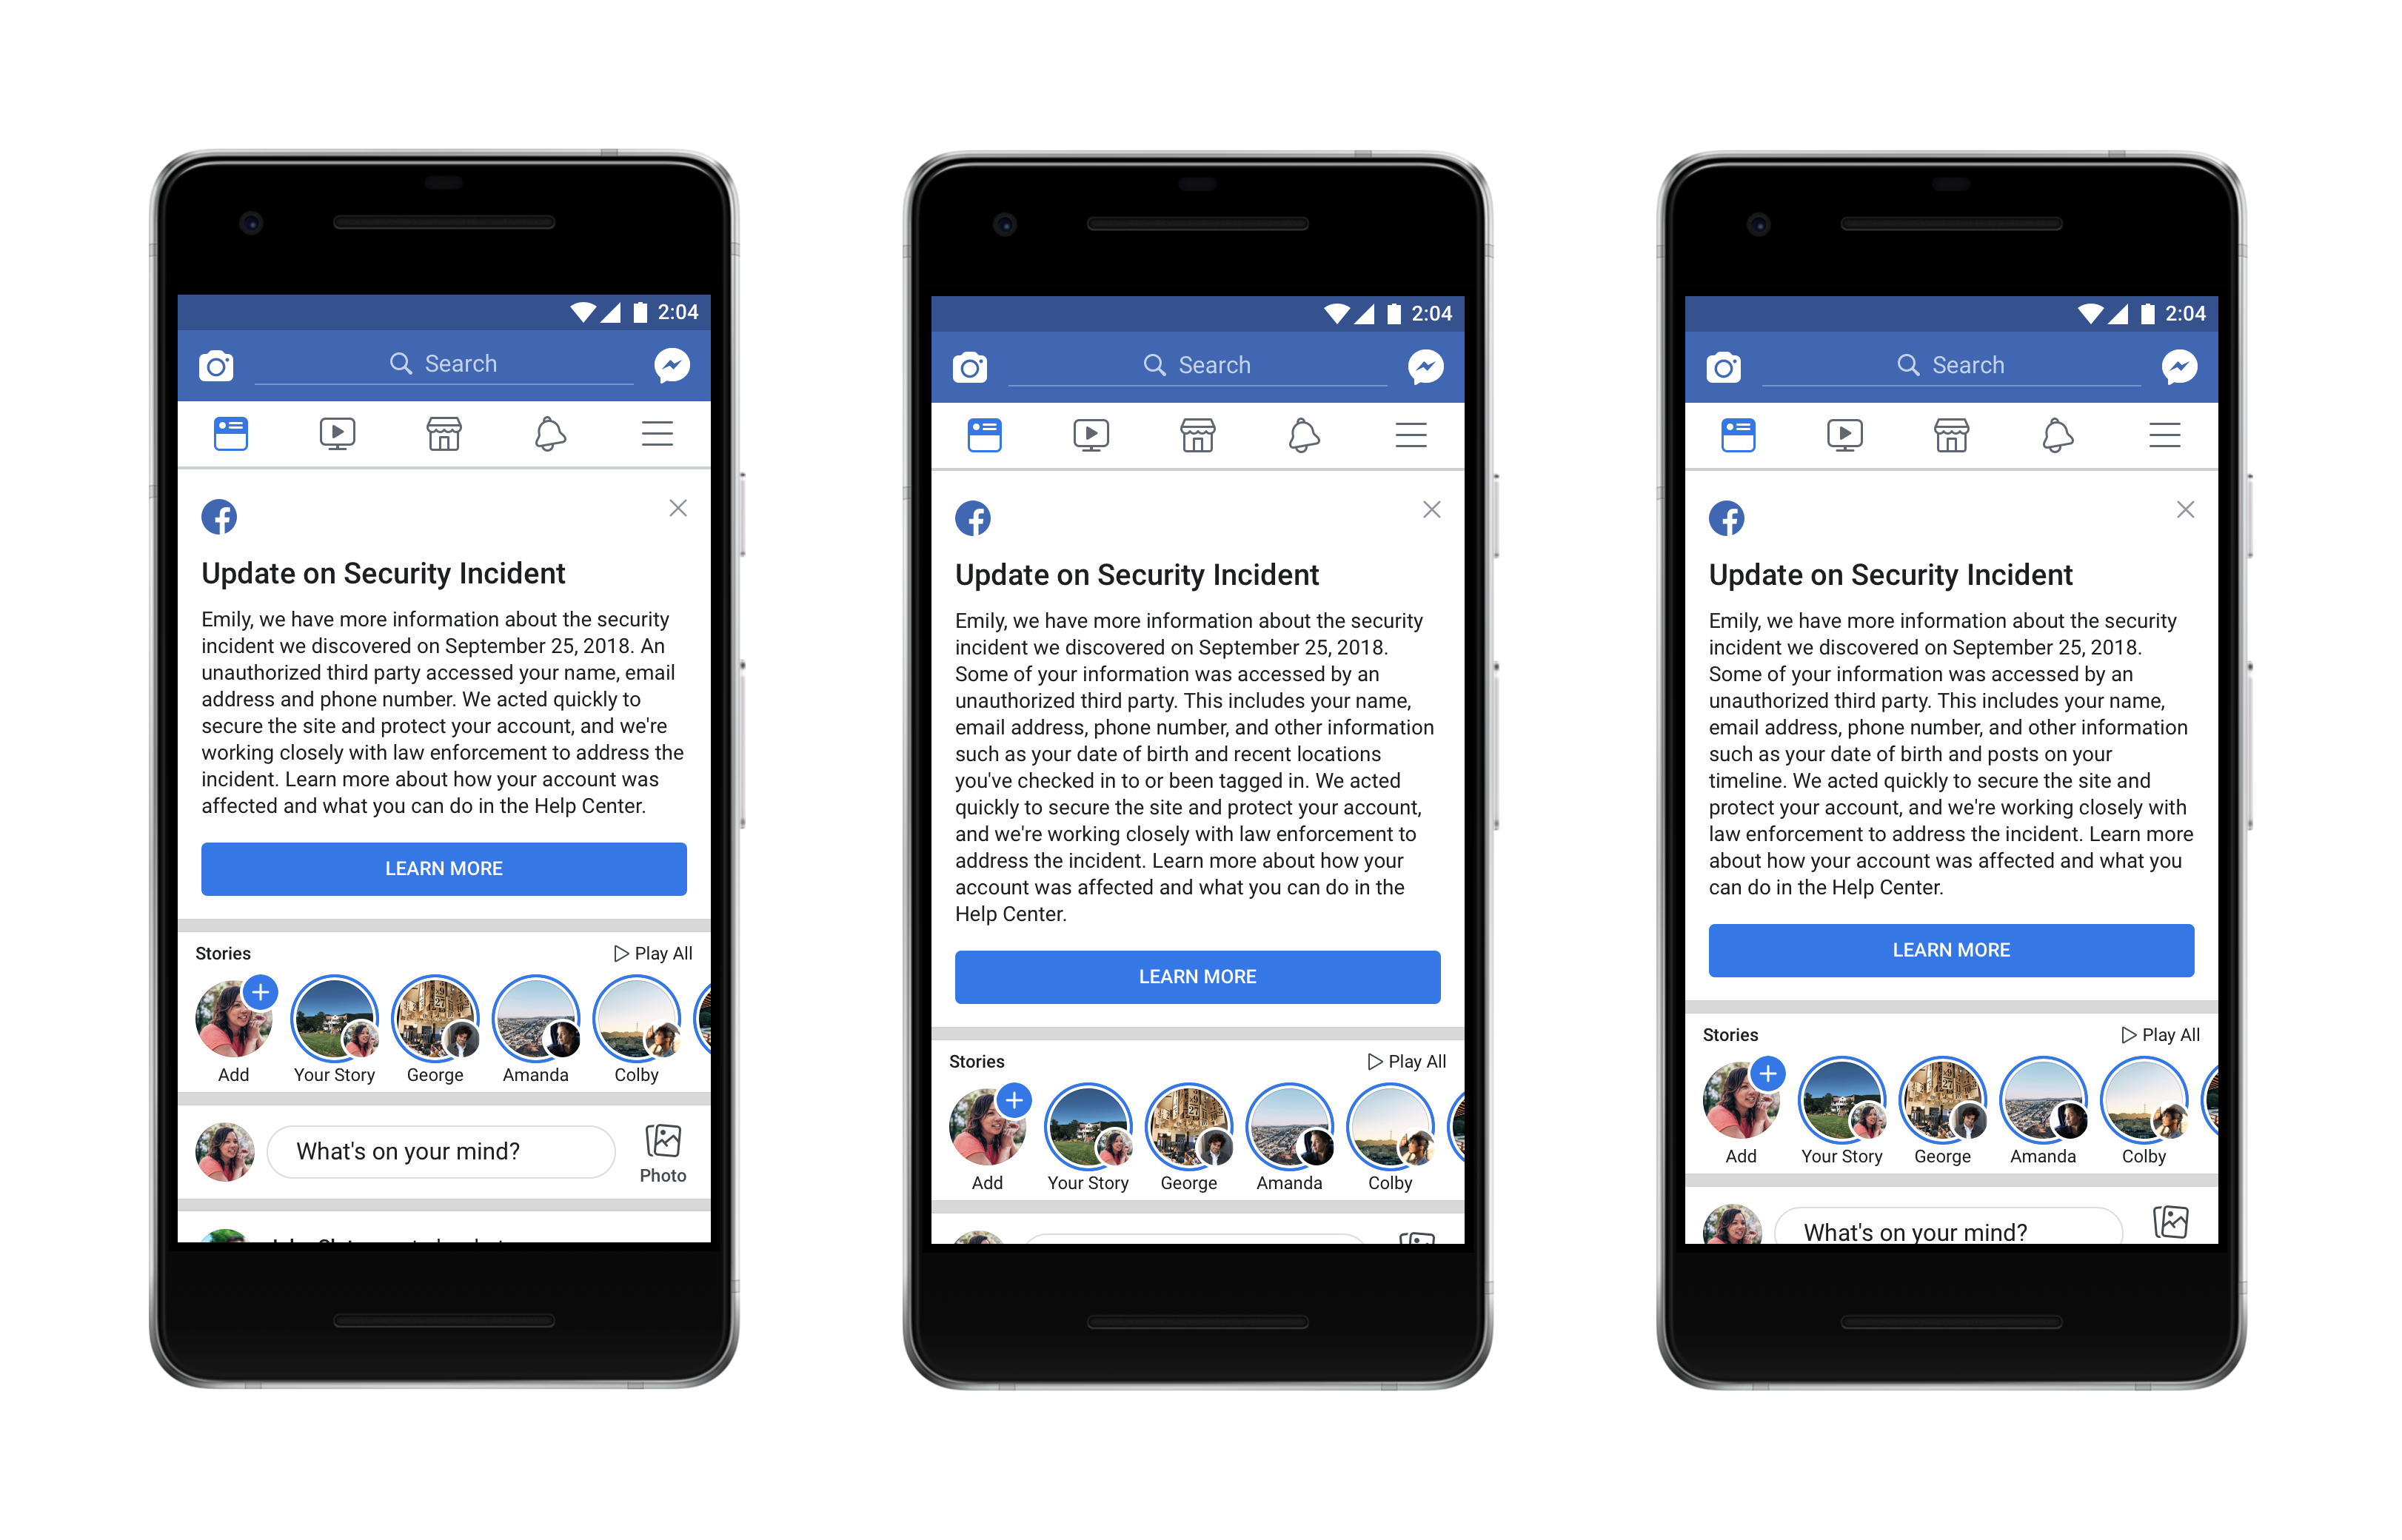 New Details Have Emerged on the Facebook Data Attack. Here's What You Need to Know.